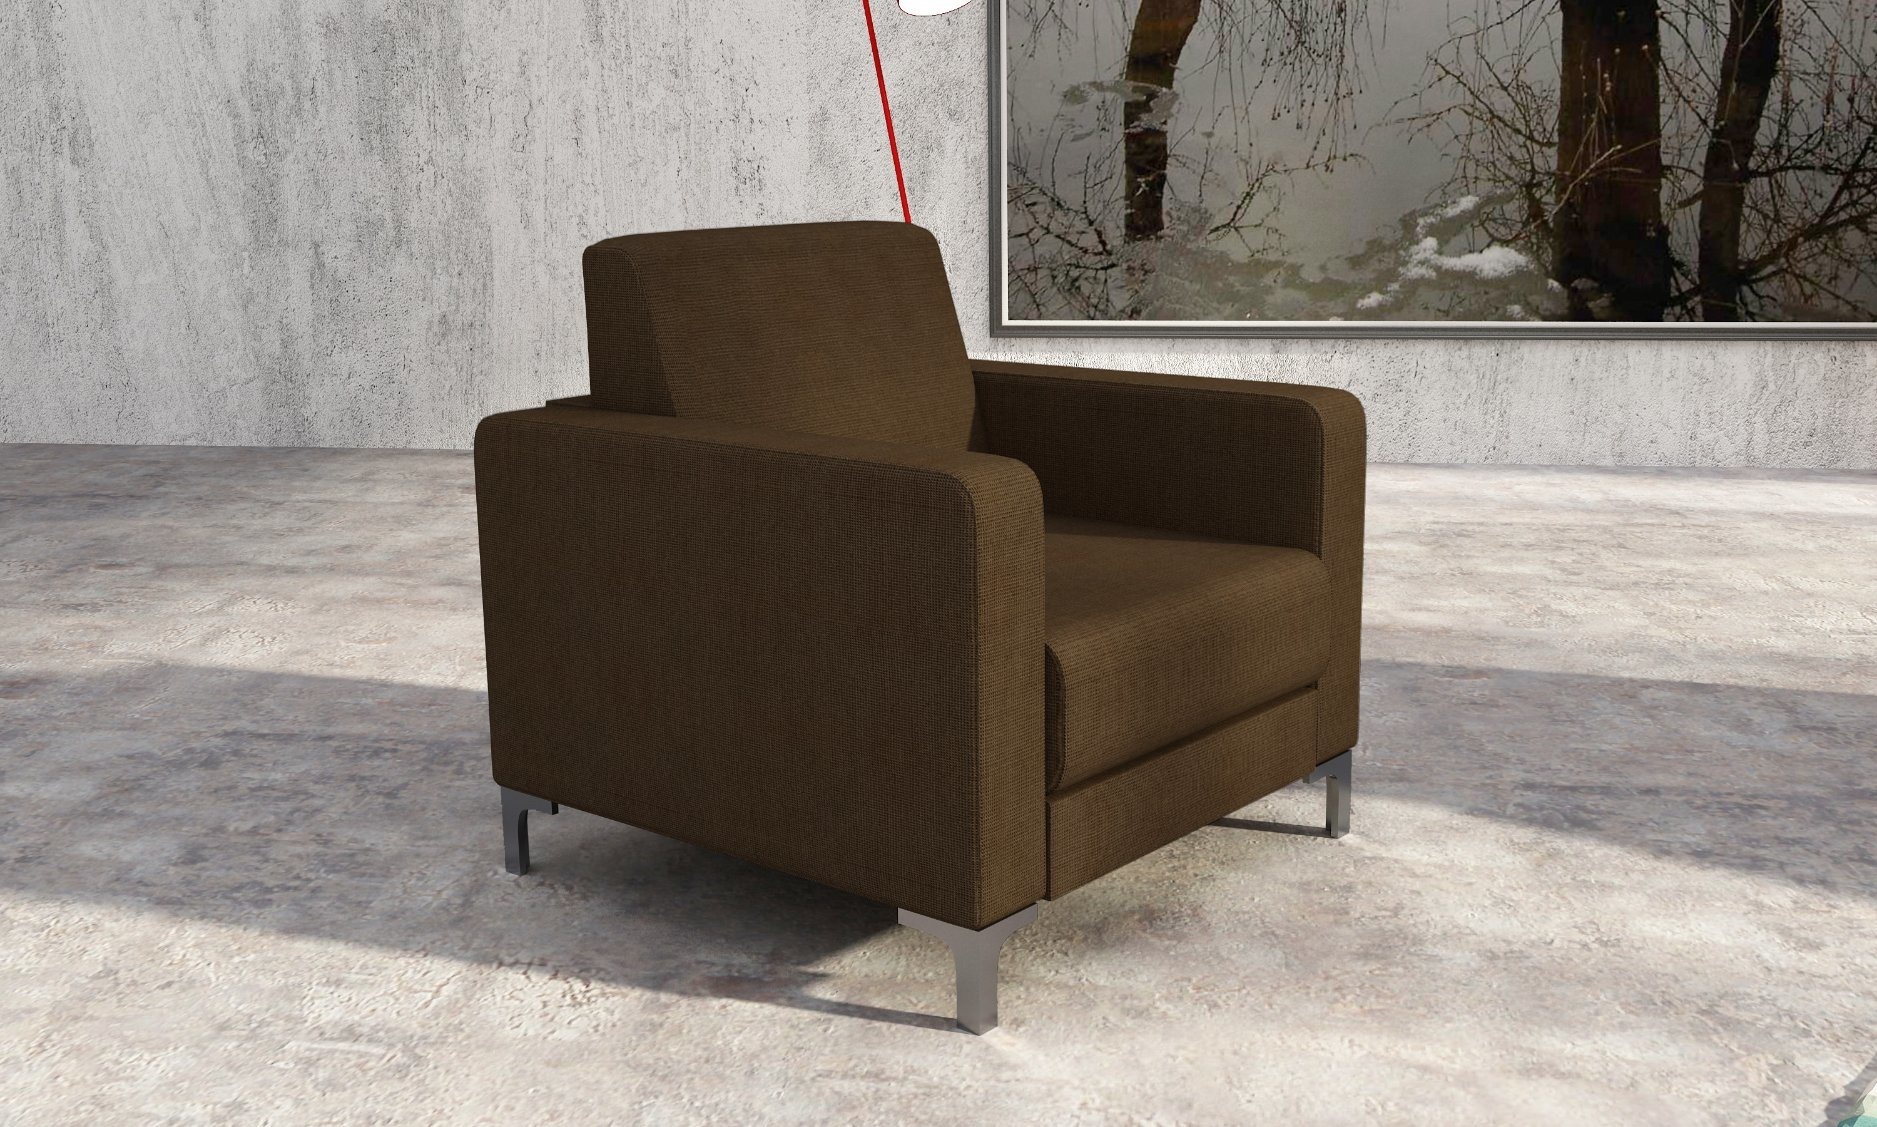 office sofa furniture. Modern Fabric Office Sofa Set With Steel Legs Furniture